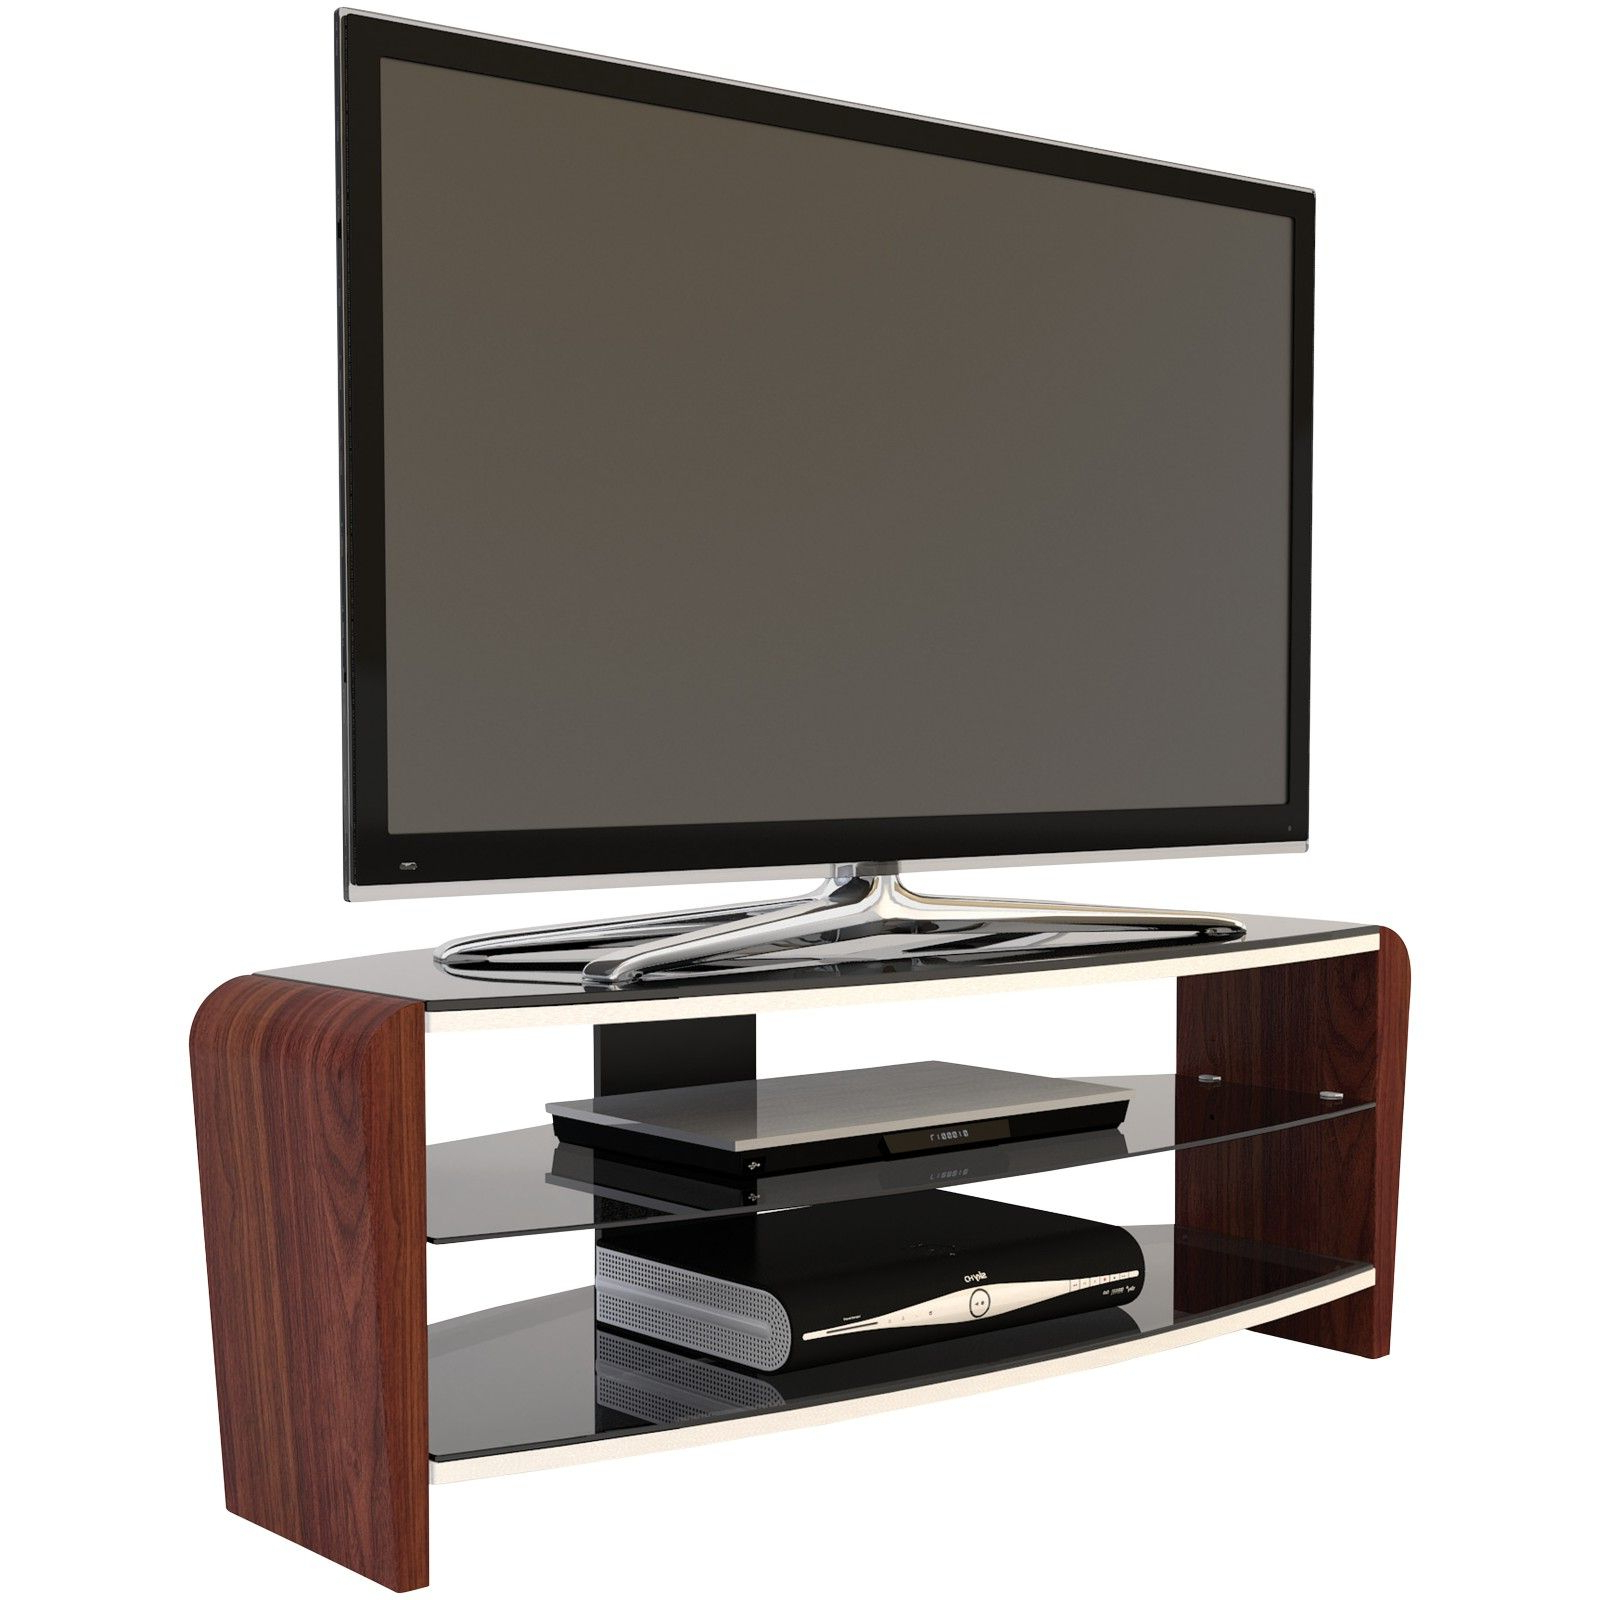 Alphason Francium 110 Tv Stand For Tvs Up To 50 On Sale In In Exhibit Corner Tv Stands (View 12 of 20)